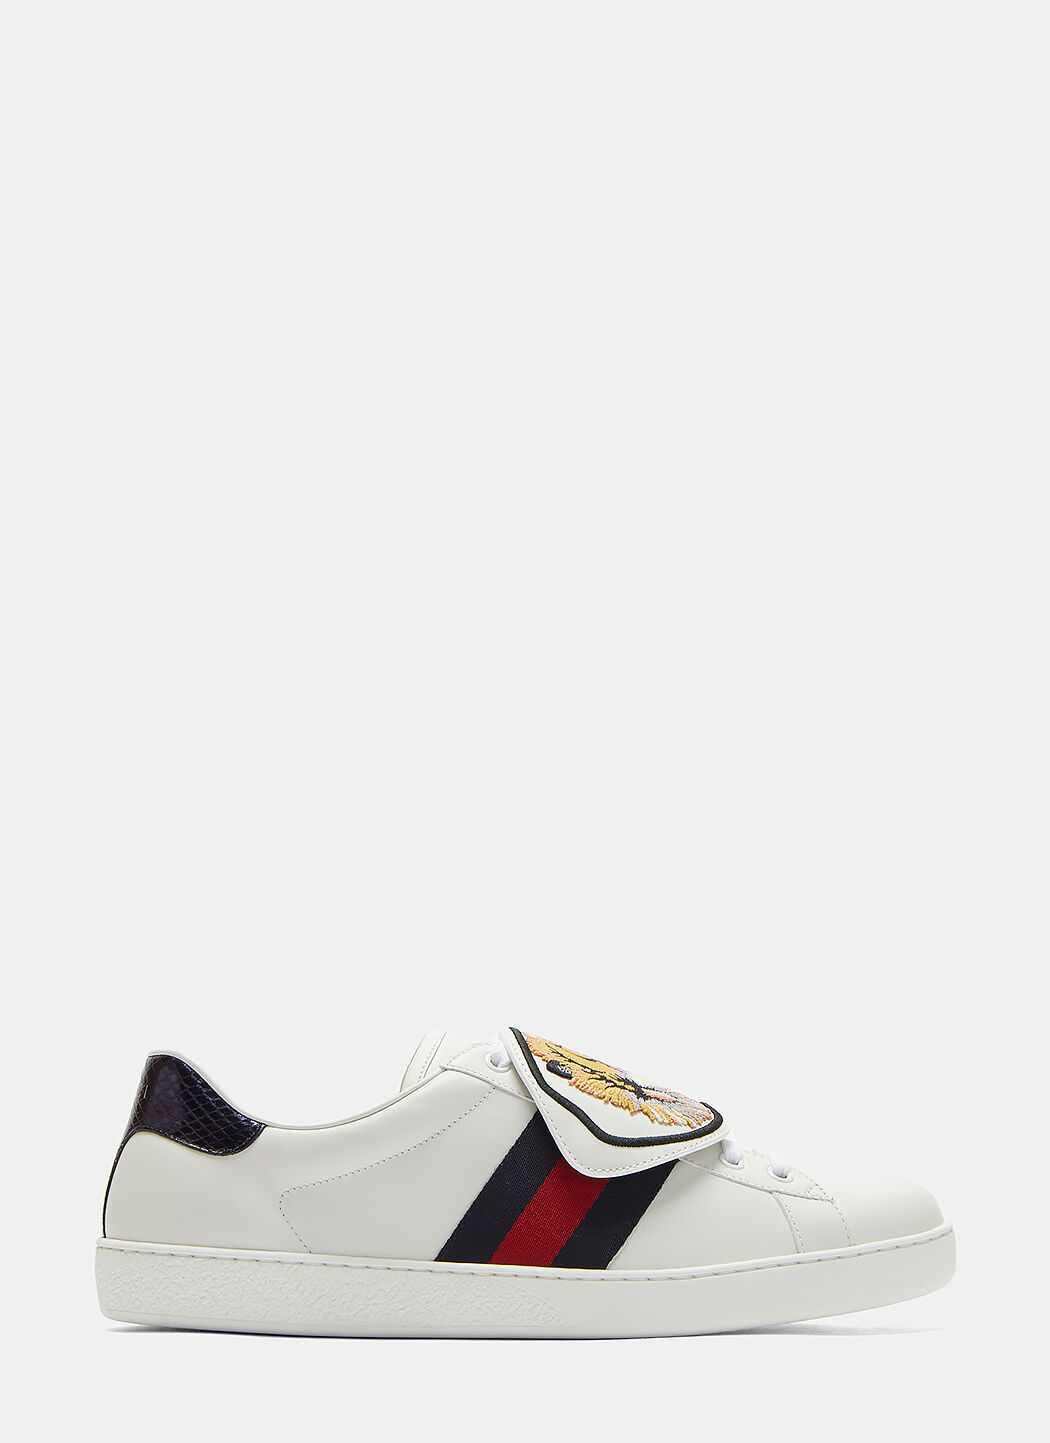 Ace Removable Embroidered Tiger Patch Sneakers in White